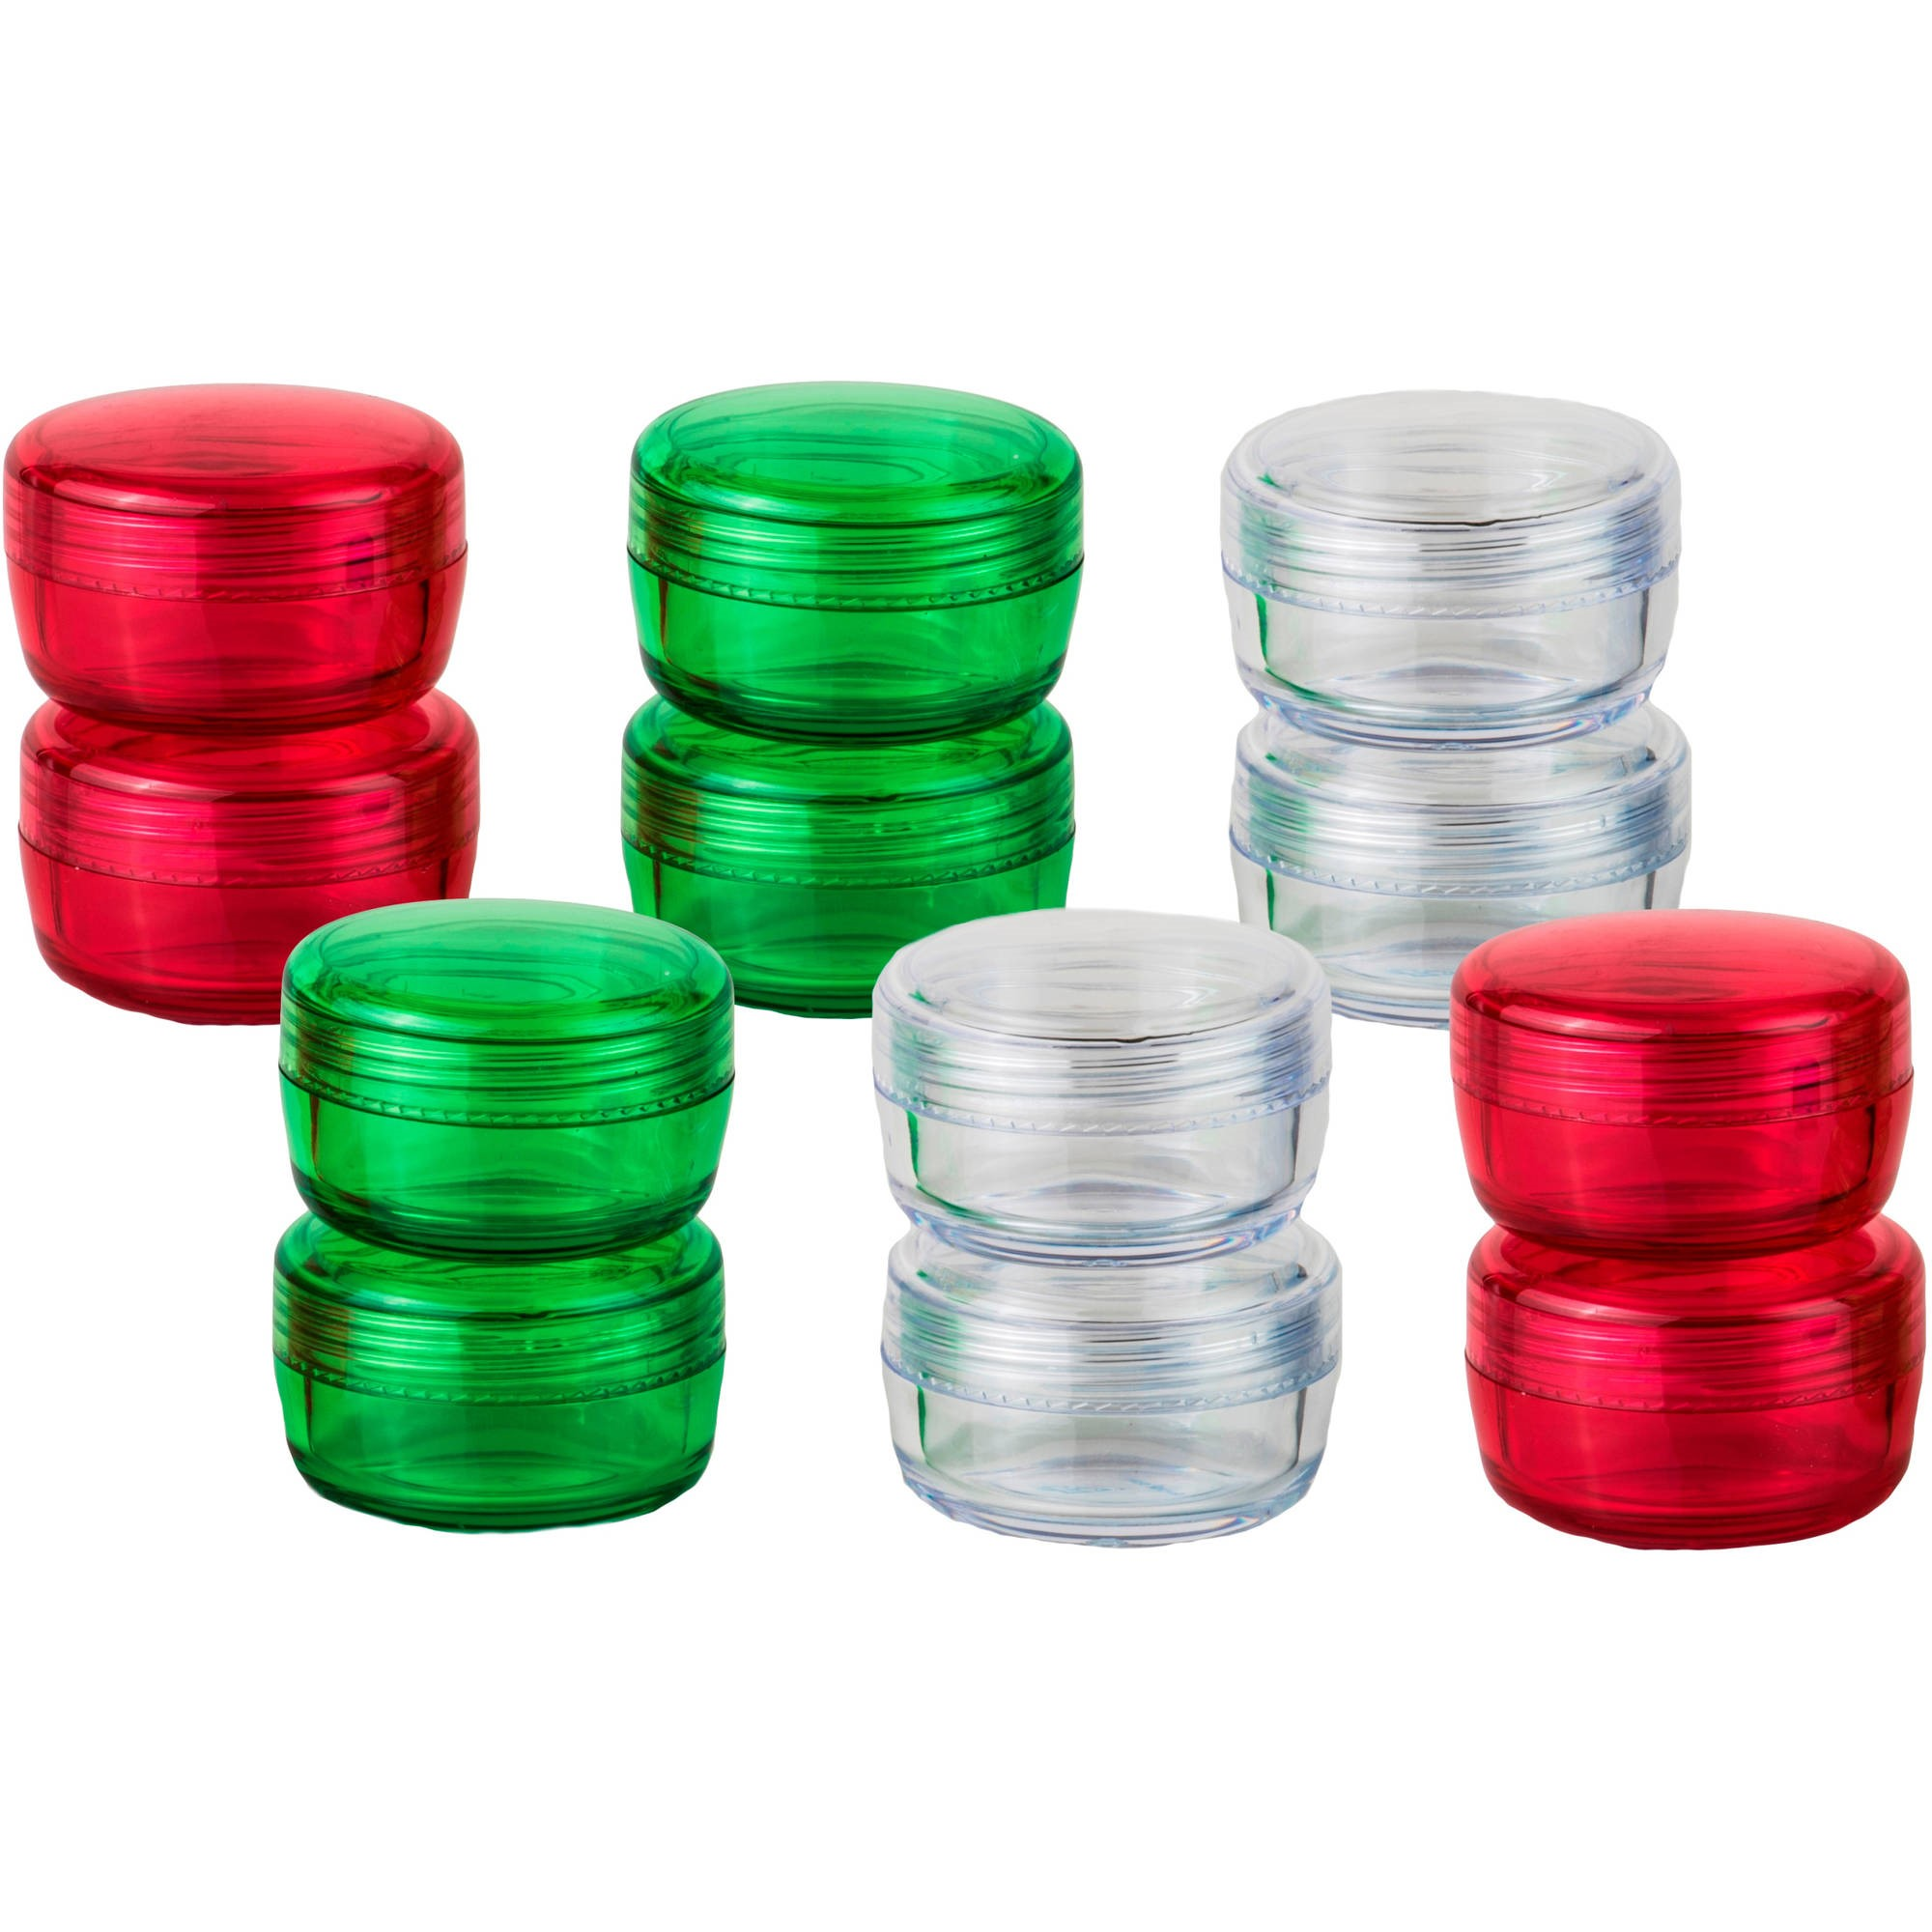 iGo Travel Container Jars Bundle Pack, 12 count